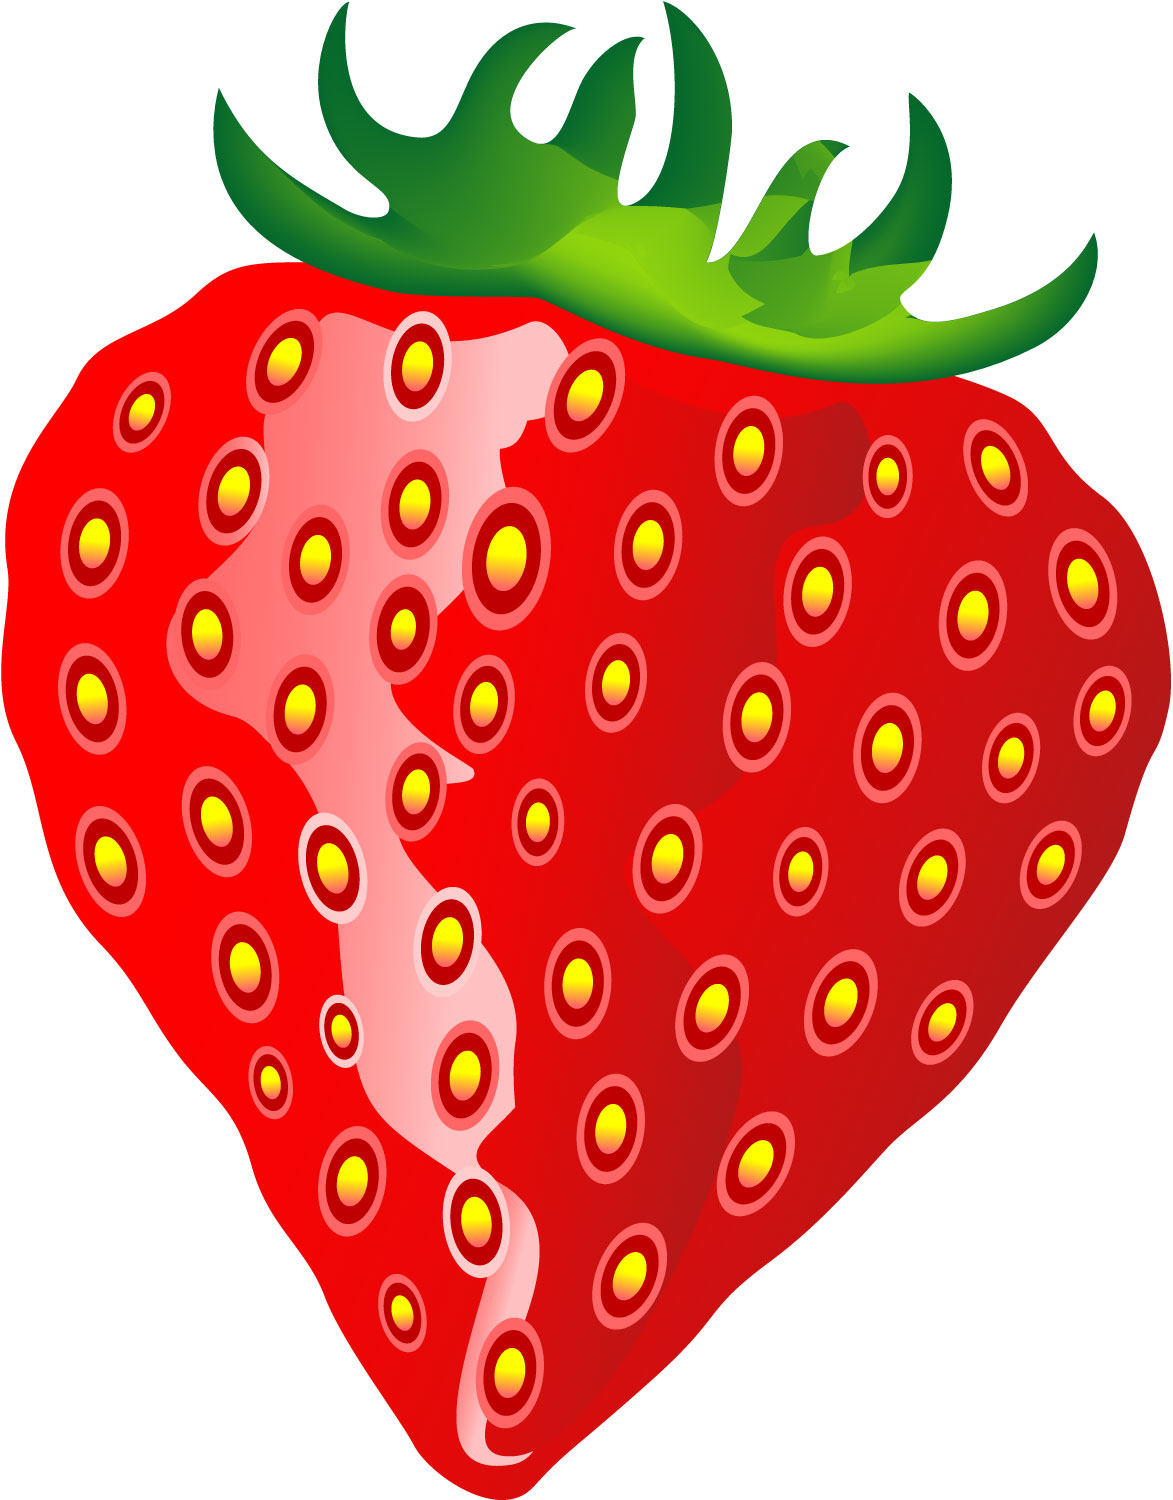 Strawberries clipart 4 » Clipart Station.